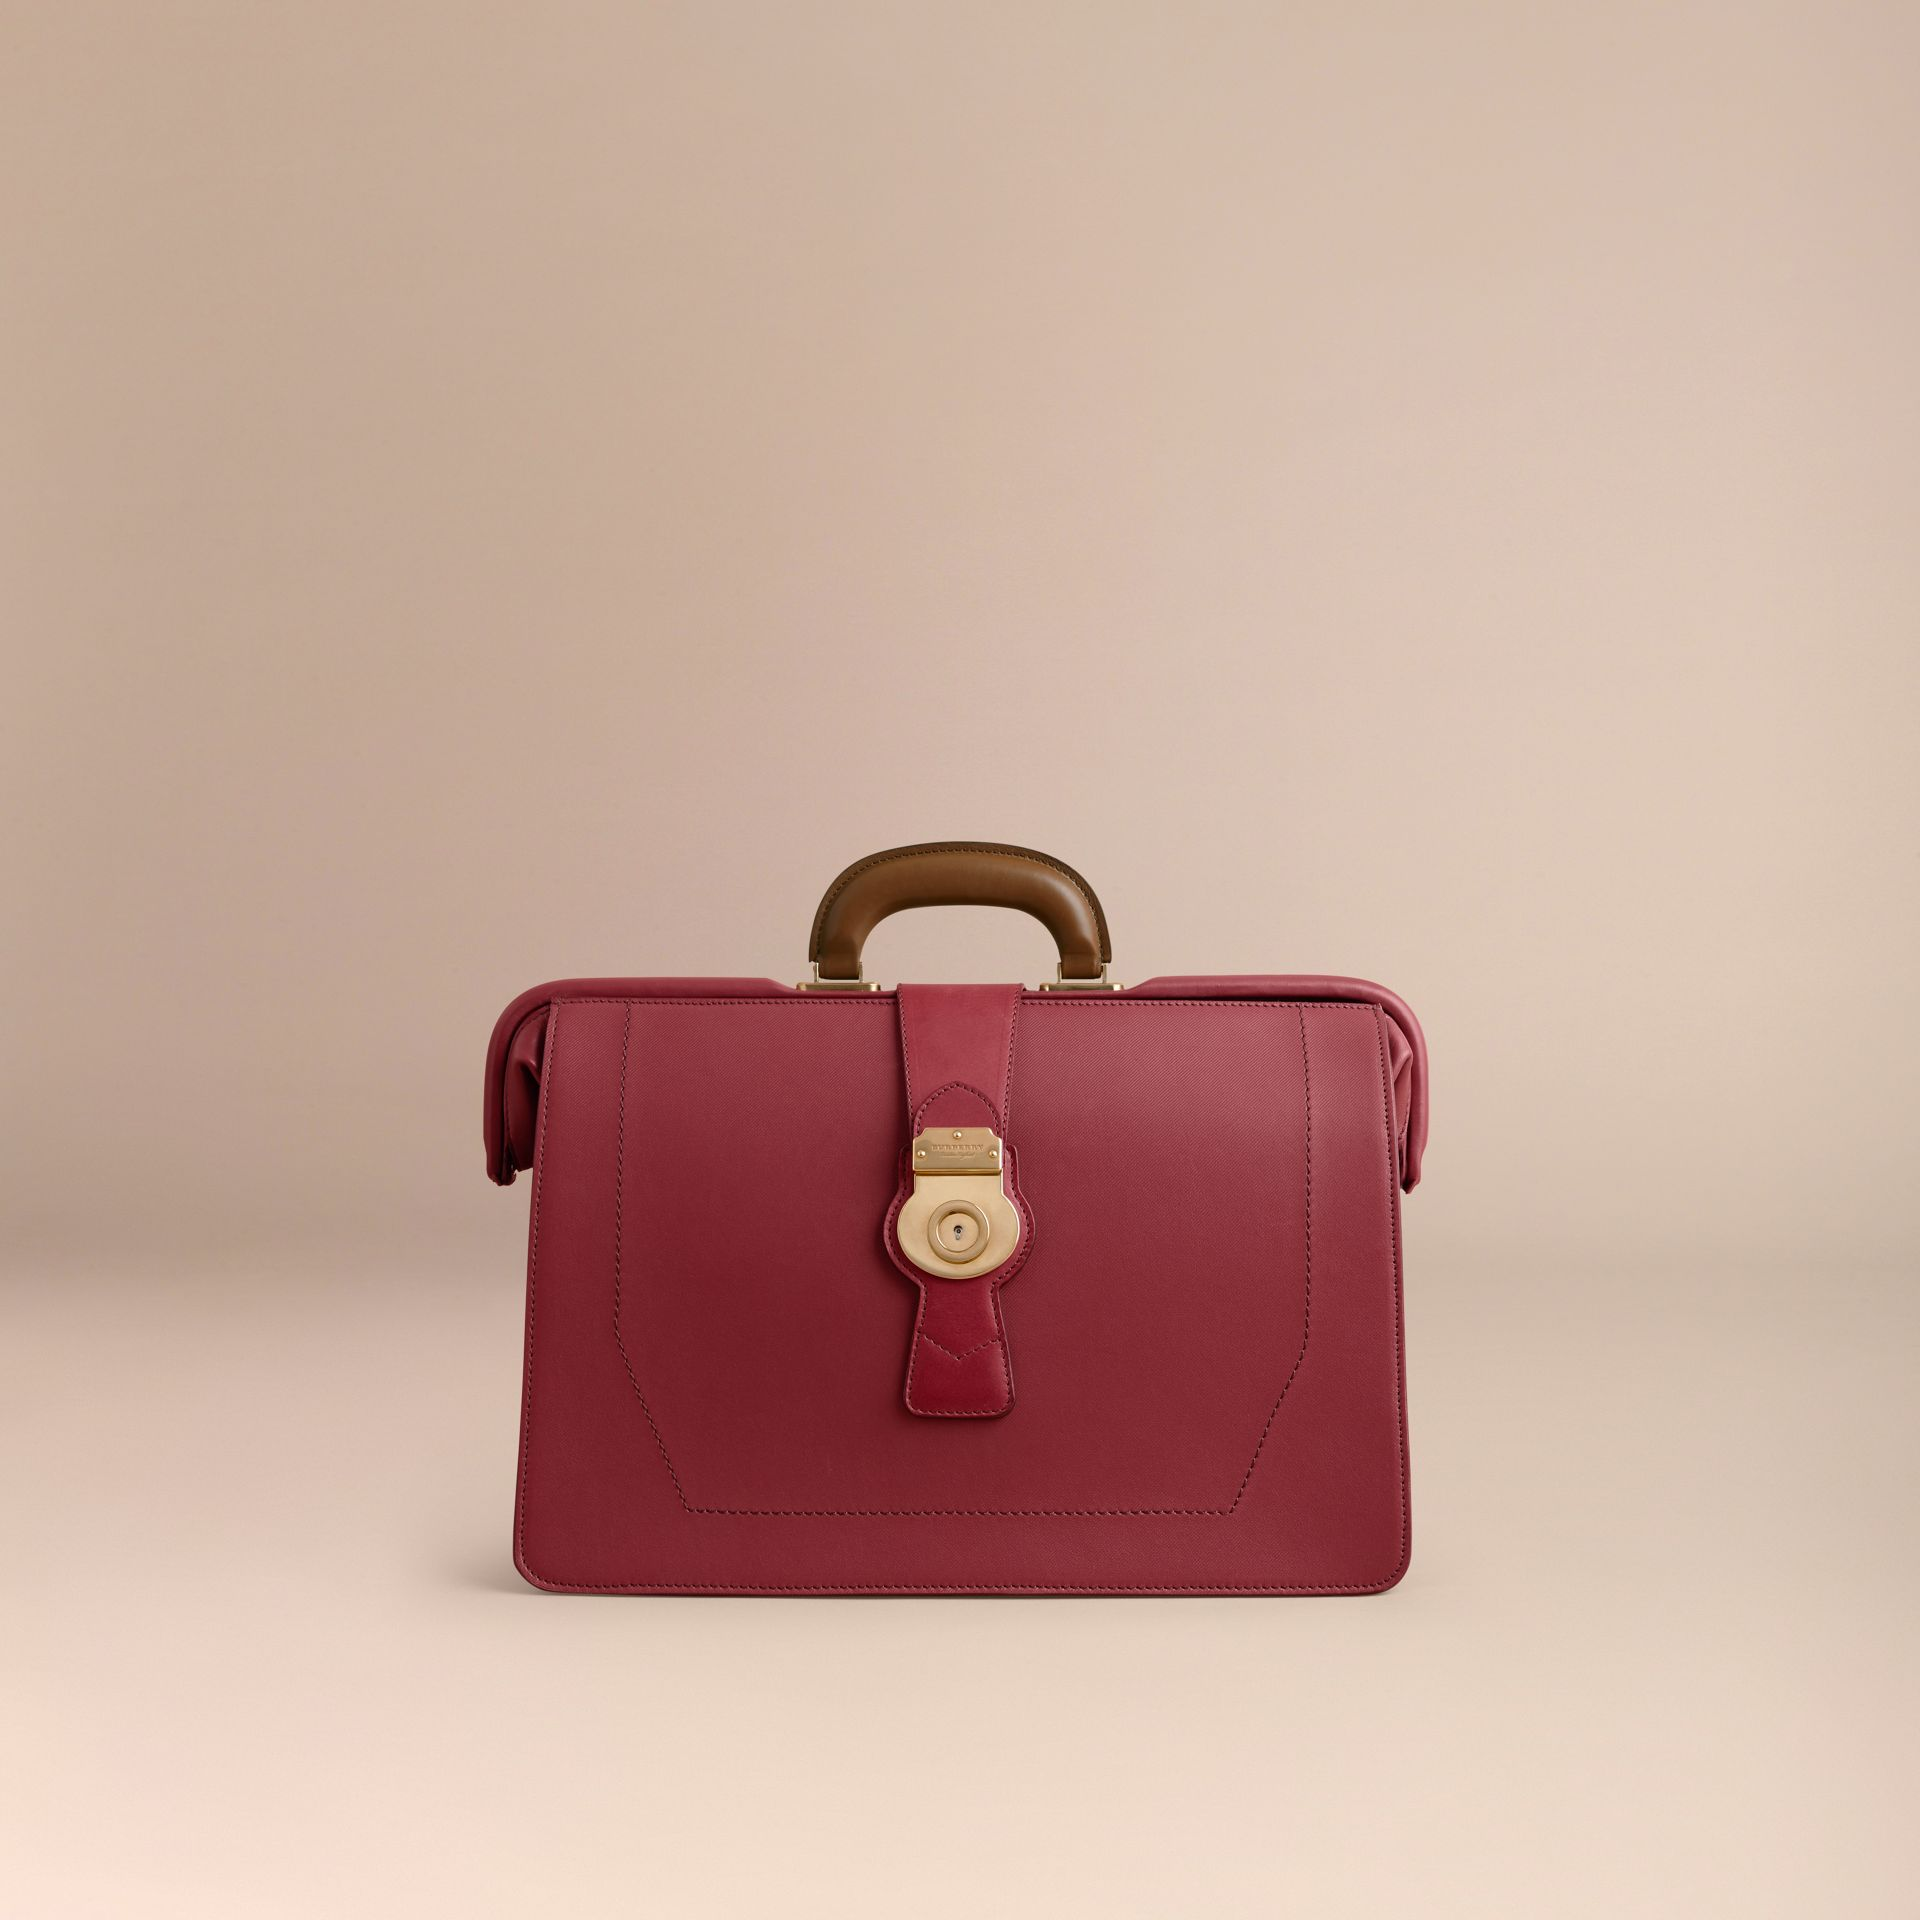 Sac docteur DK88 (Rouge Antique) - Homme | Burberry - photo de la galerie 7